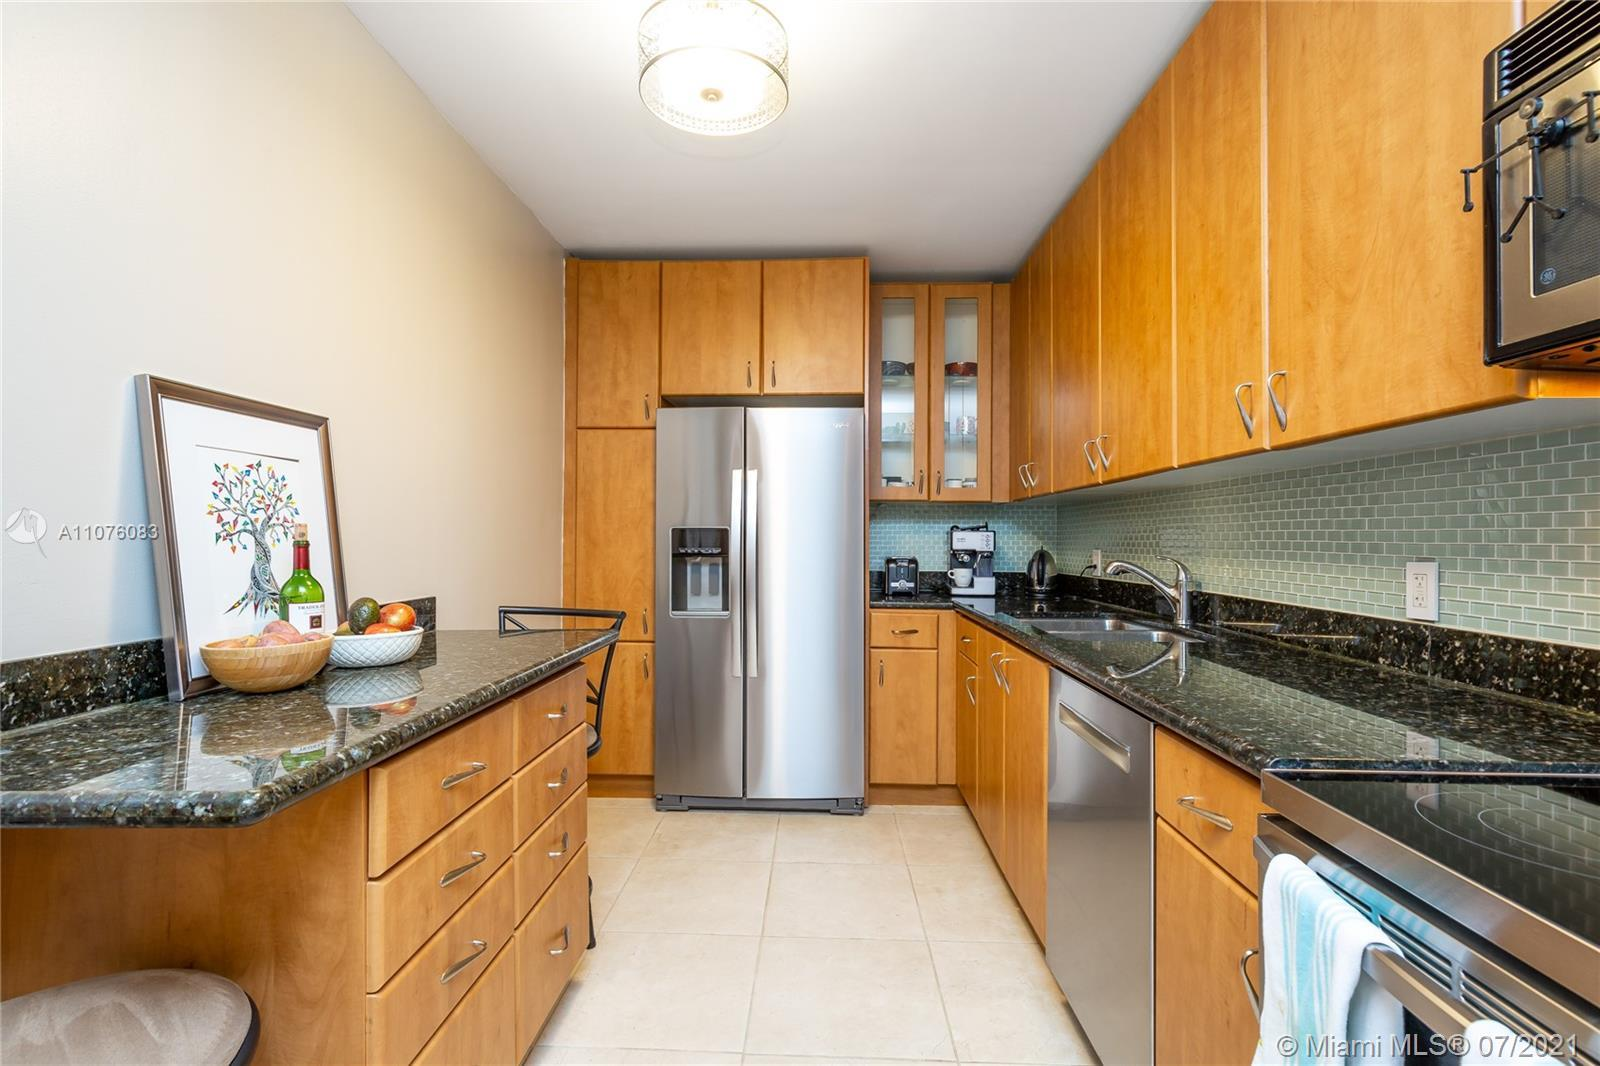 Totally Updated one Bedroom condo with great water views of the Ocean and Bay. Walking distance to t